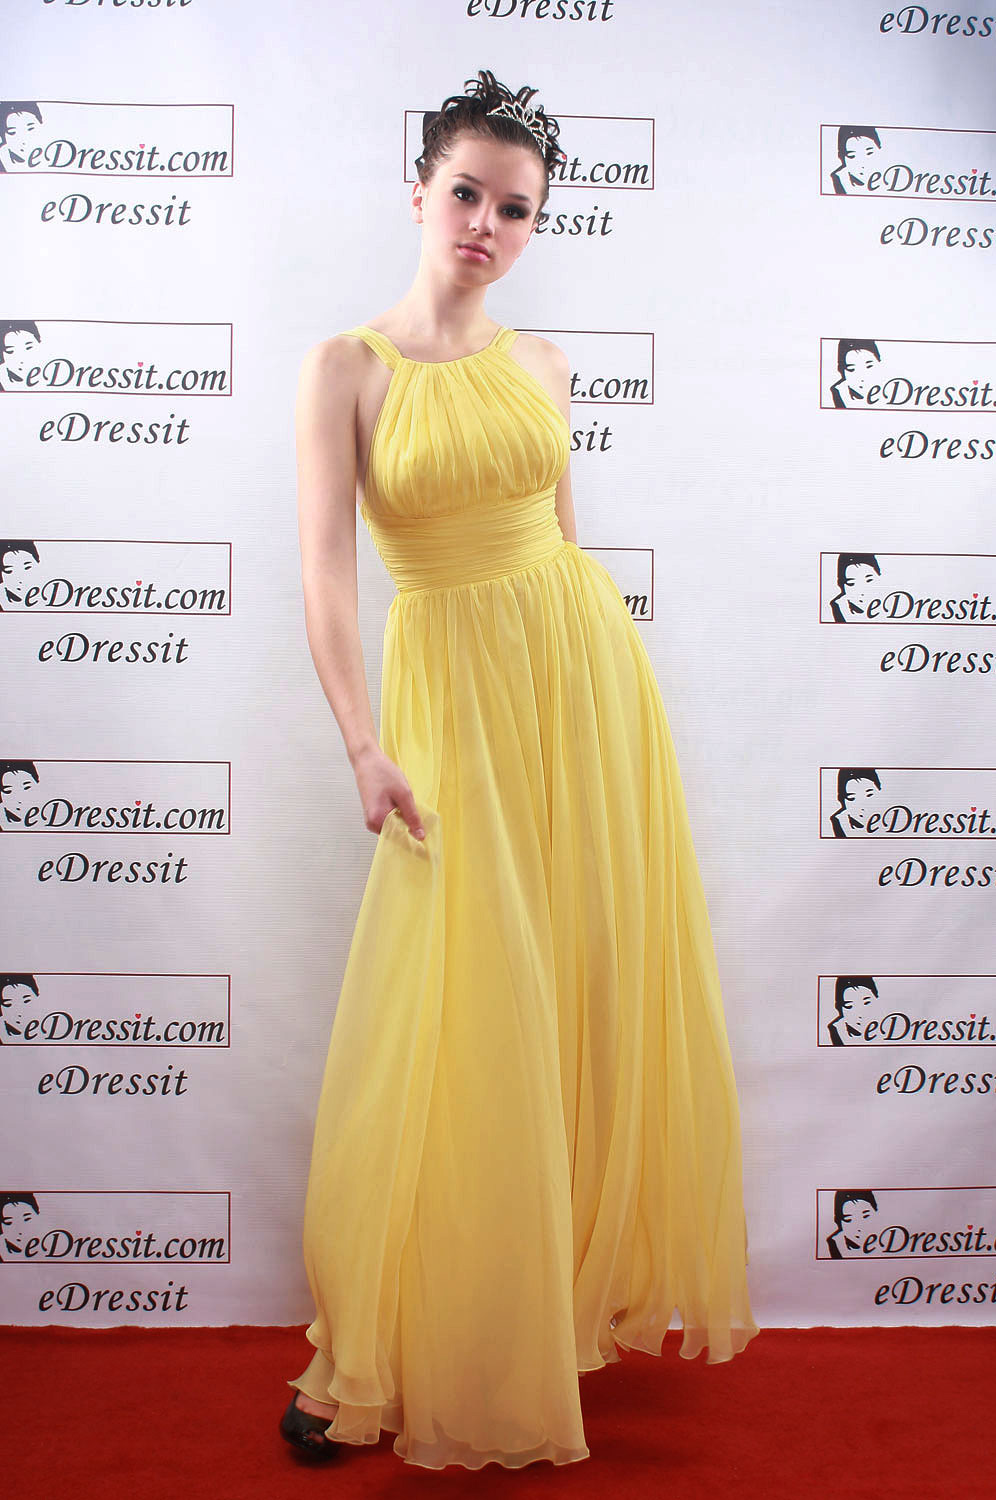 On sale !! eDressit Celebrity Sexy yellow  Prom Gown Evening Dress (00081403f)